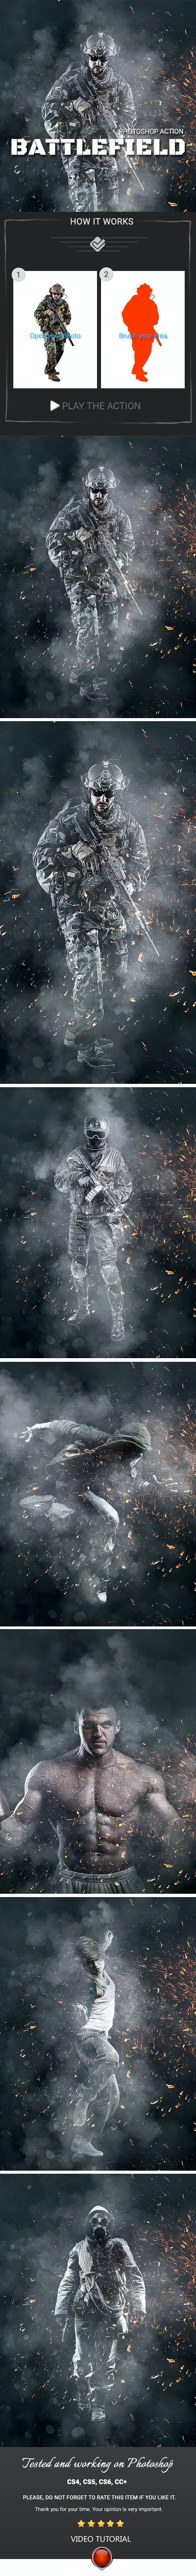 Battlefield Photoshop Action - Photo Effects Actions